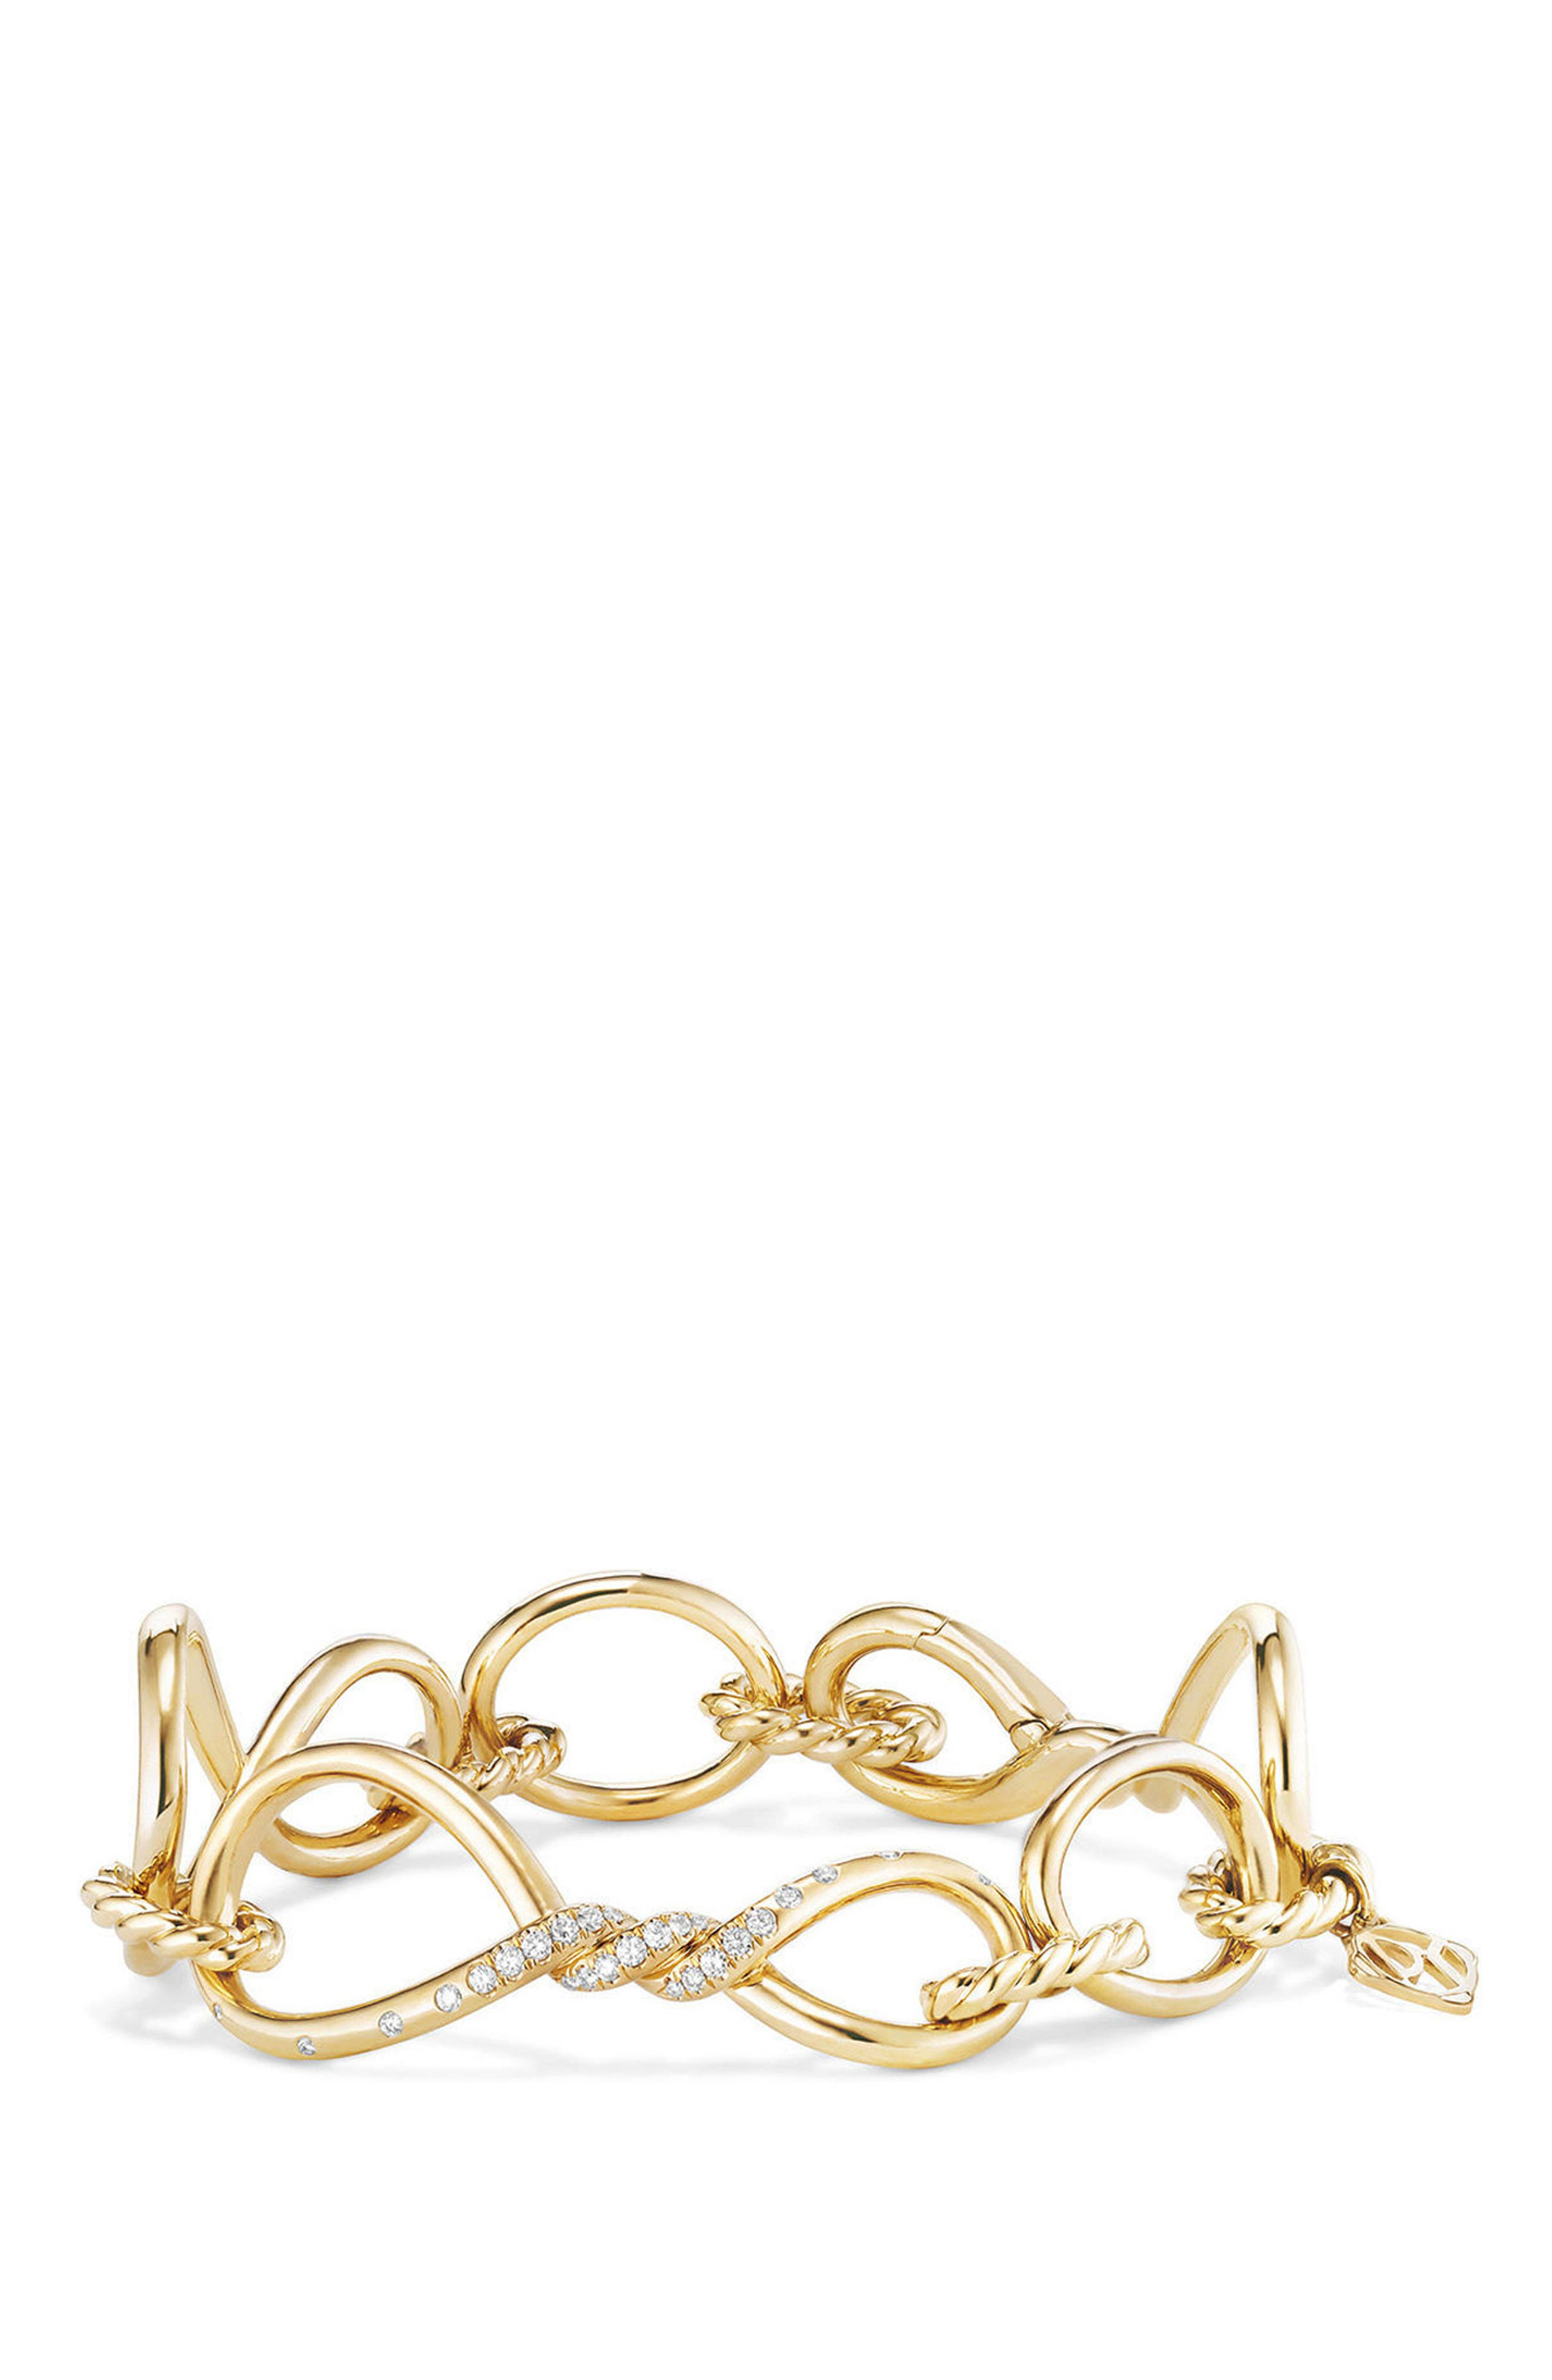 DAVID YURMAN Continuance Chain Bracelet with Diamonds, Main, color, YELLOW GOLD